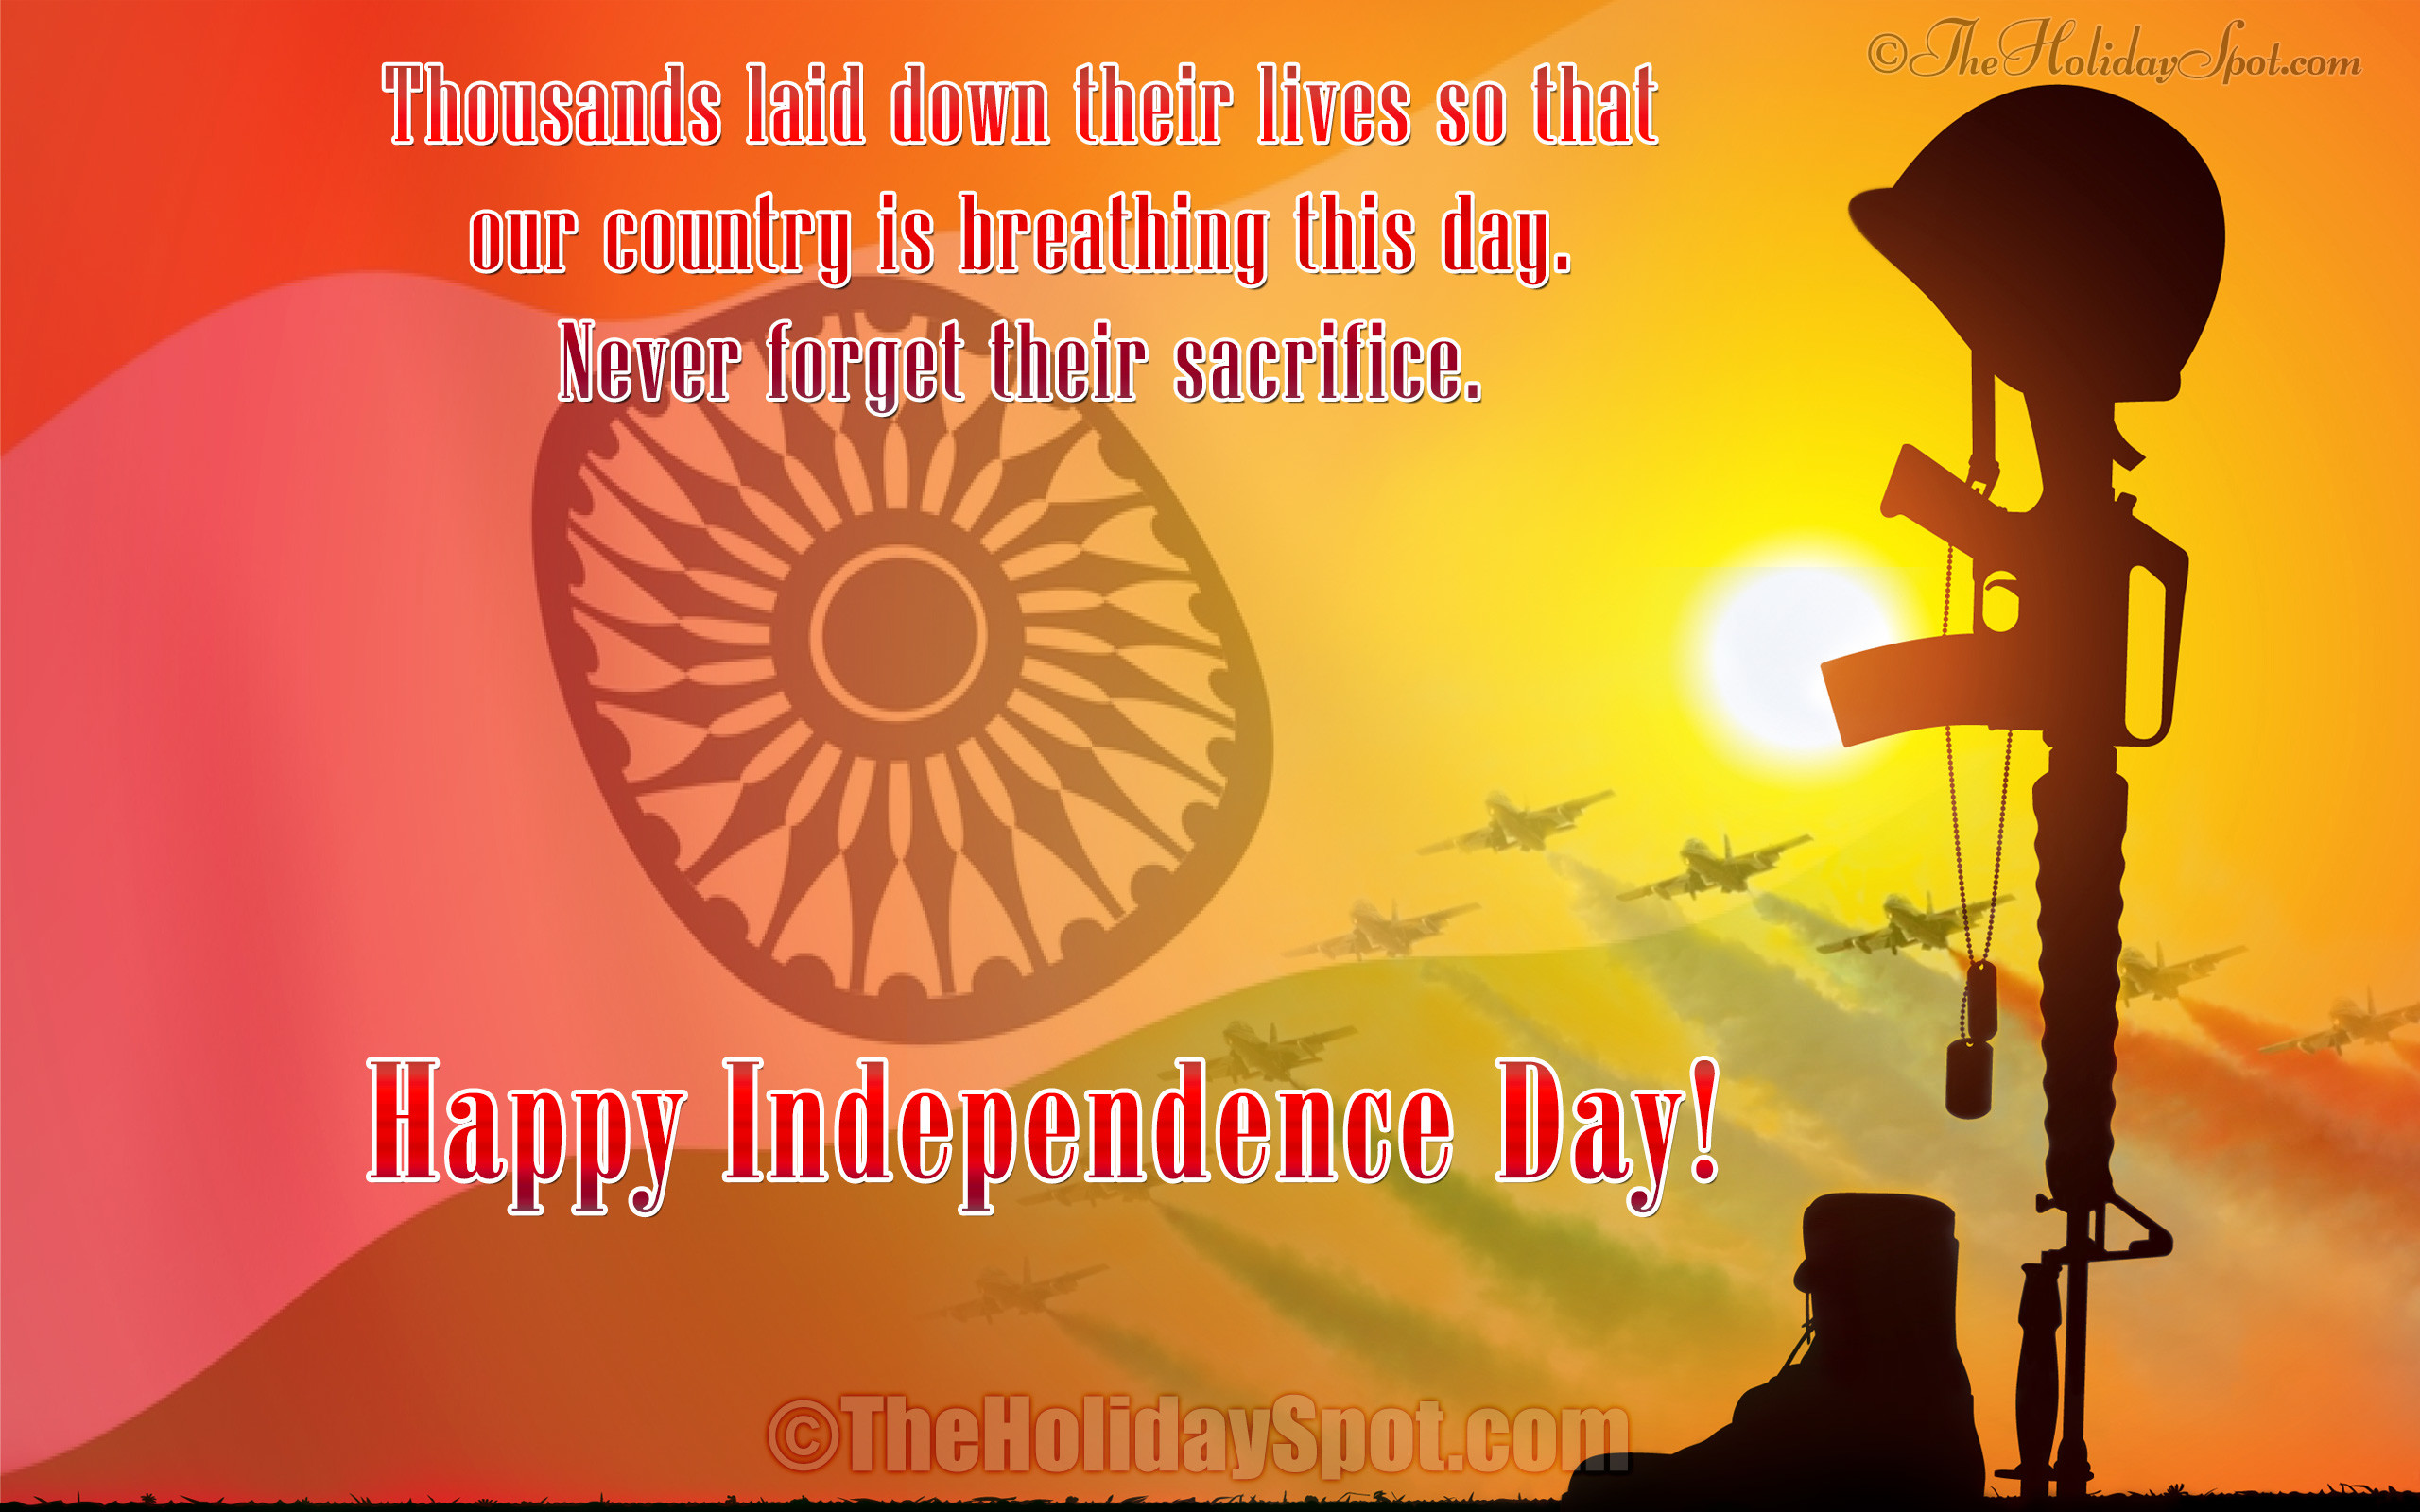 Colorful HD Wallpaper with Happy Indian Independence Day wishes